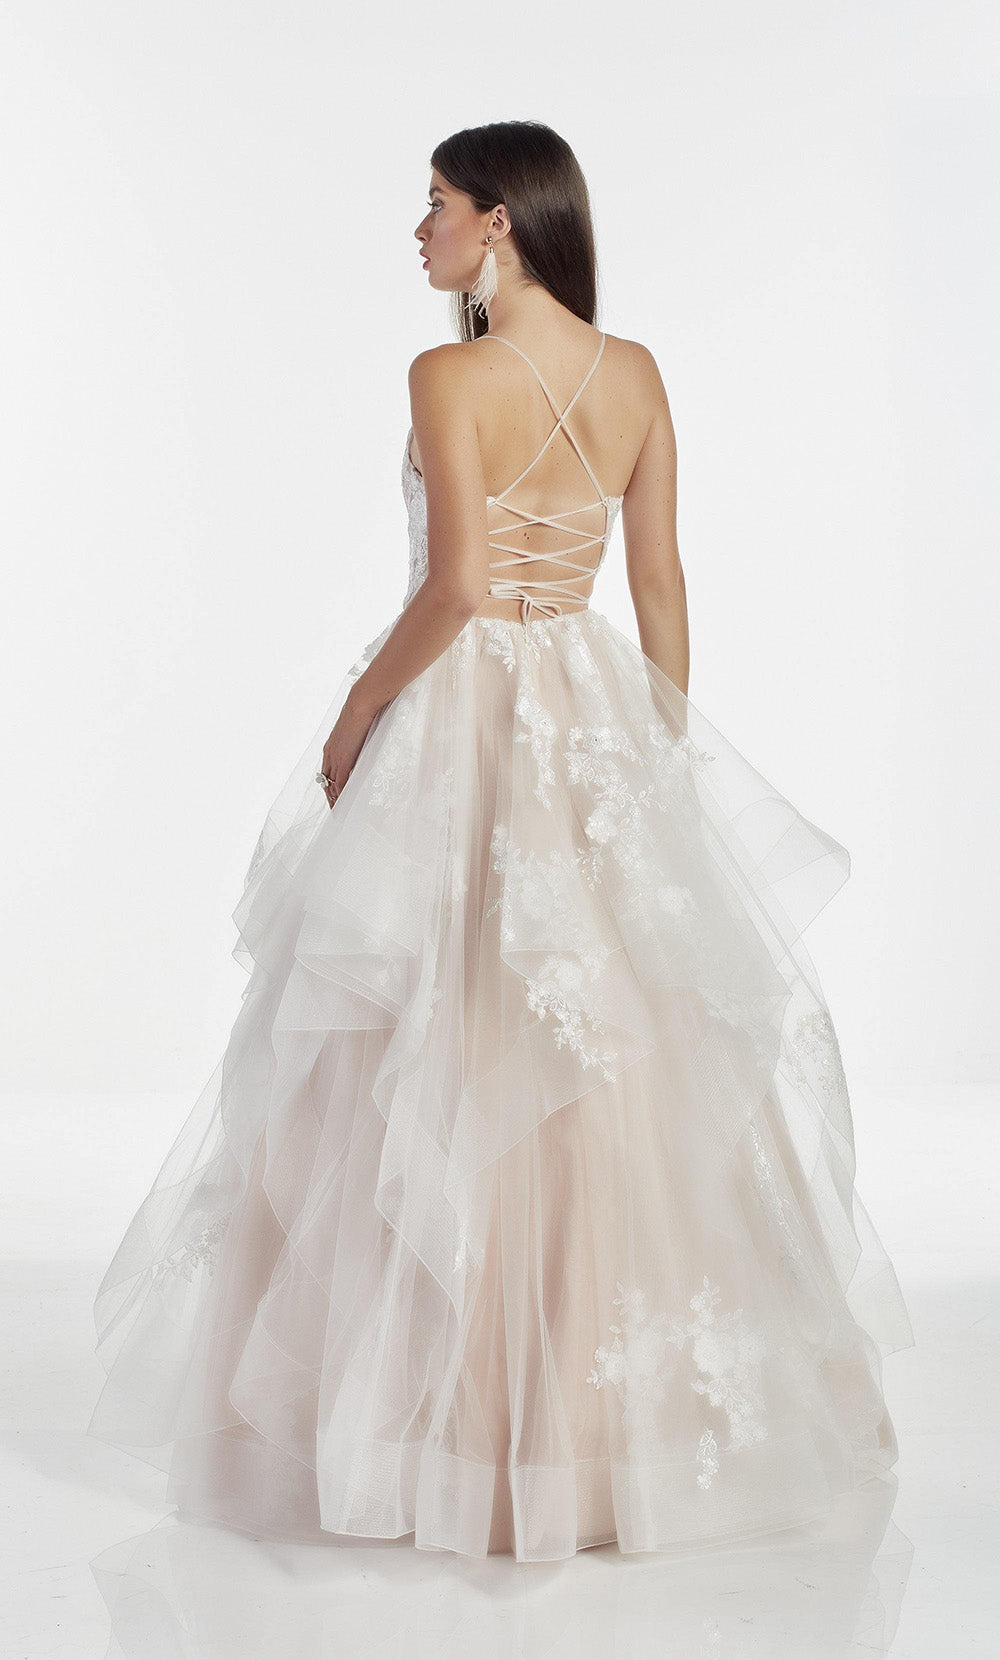 Diamond White-Rose layered ballgown with a plunging neckline and delicate floral embroidery